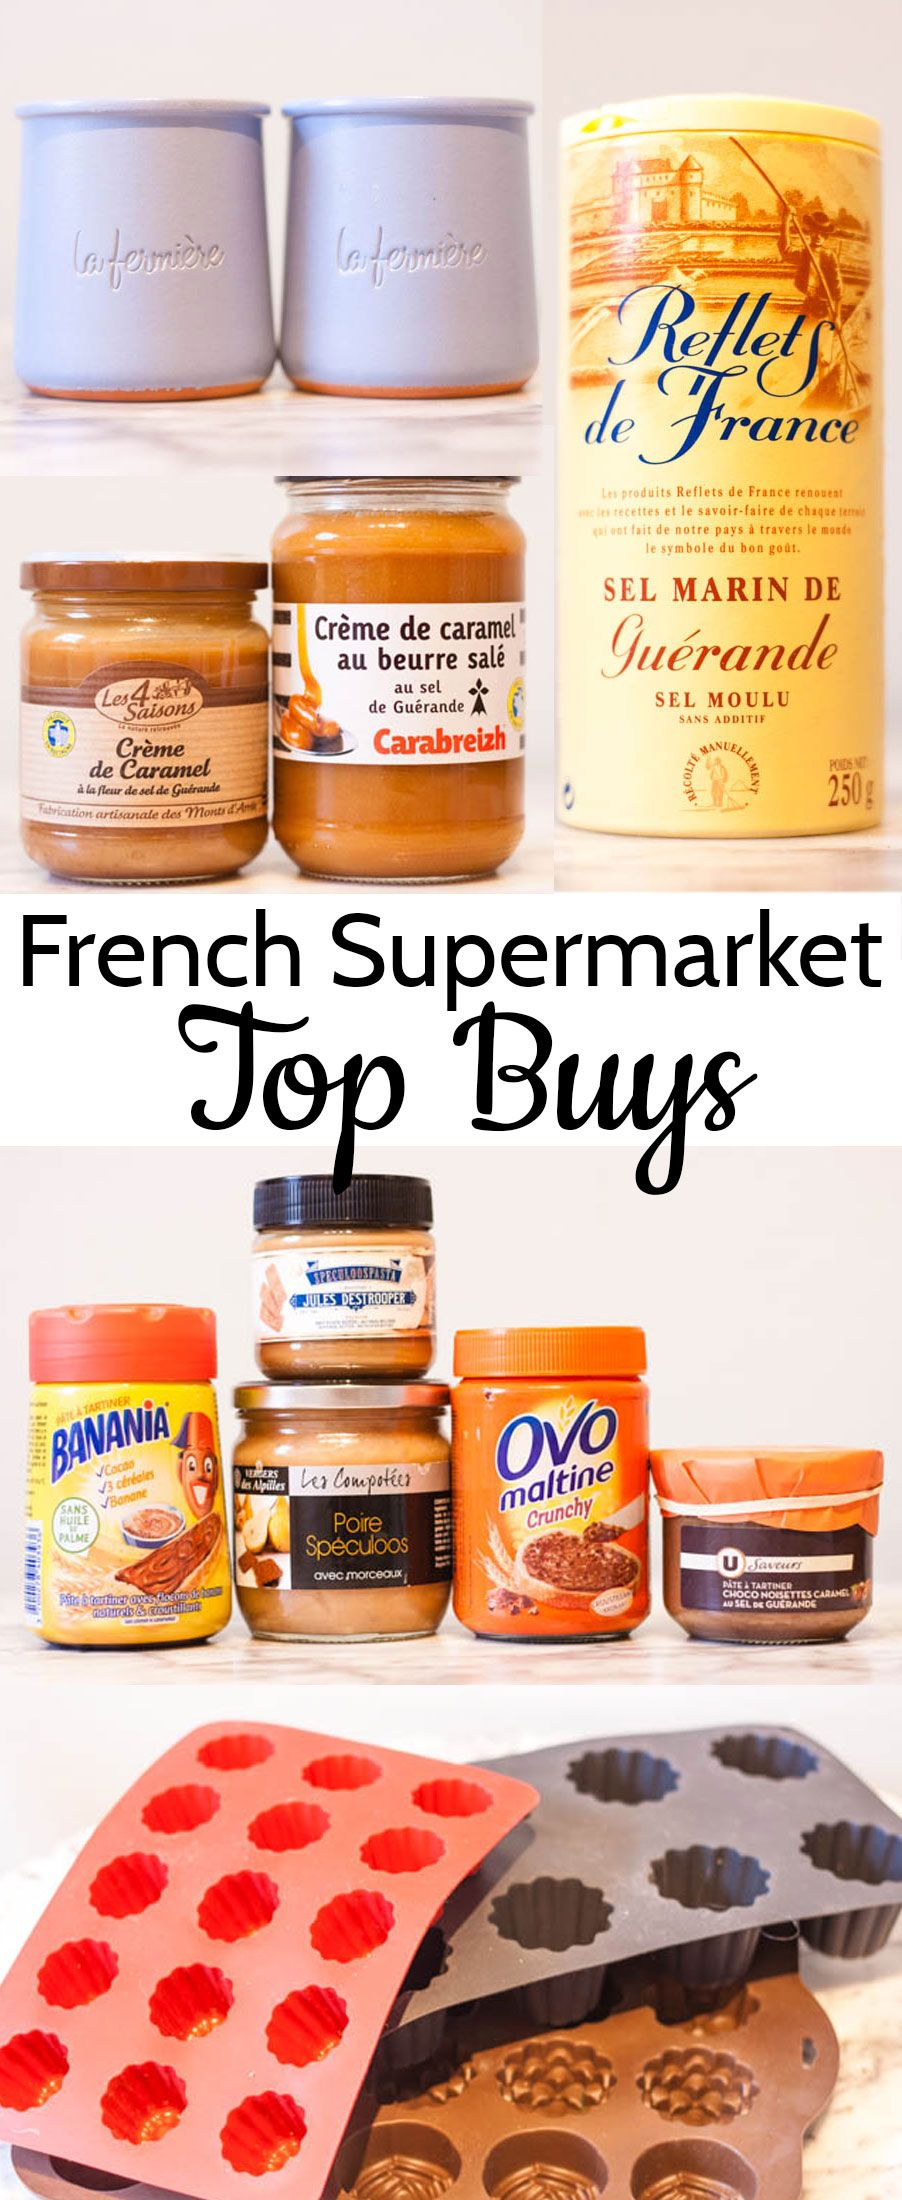 French Supermarket Top Buys - The Best of the Best